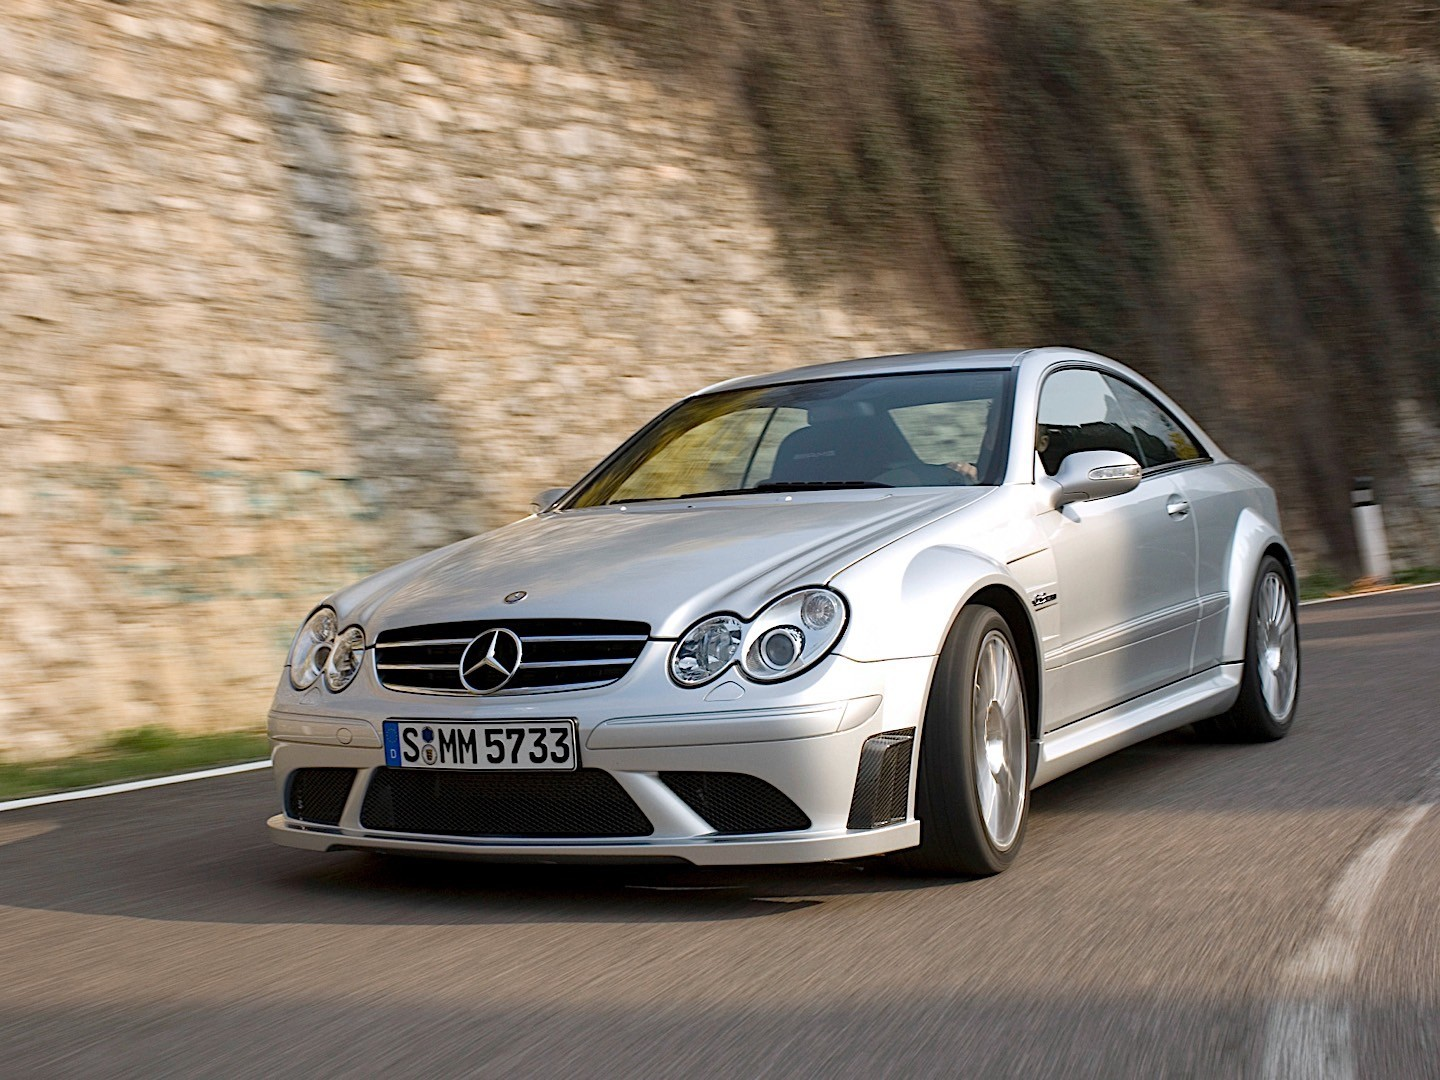 Mercedes benz clk 63 amg black series c209 specs 2007 for Mercedes benz clk black series